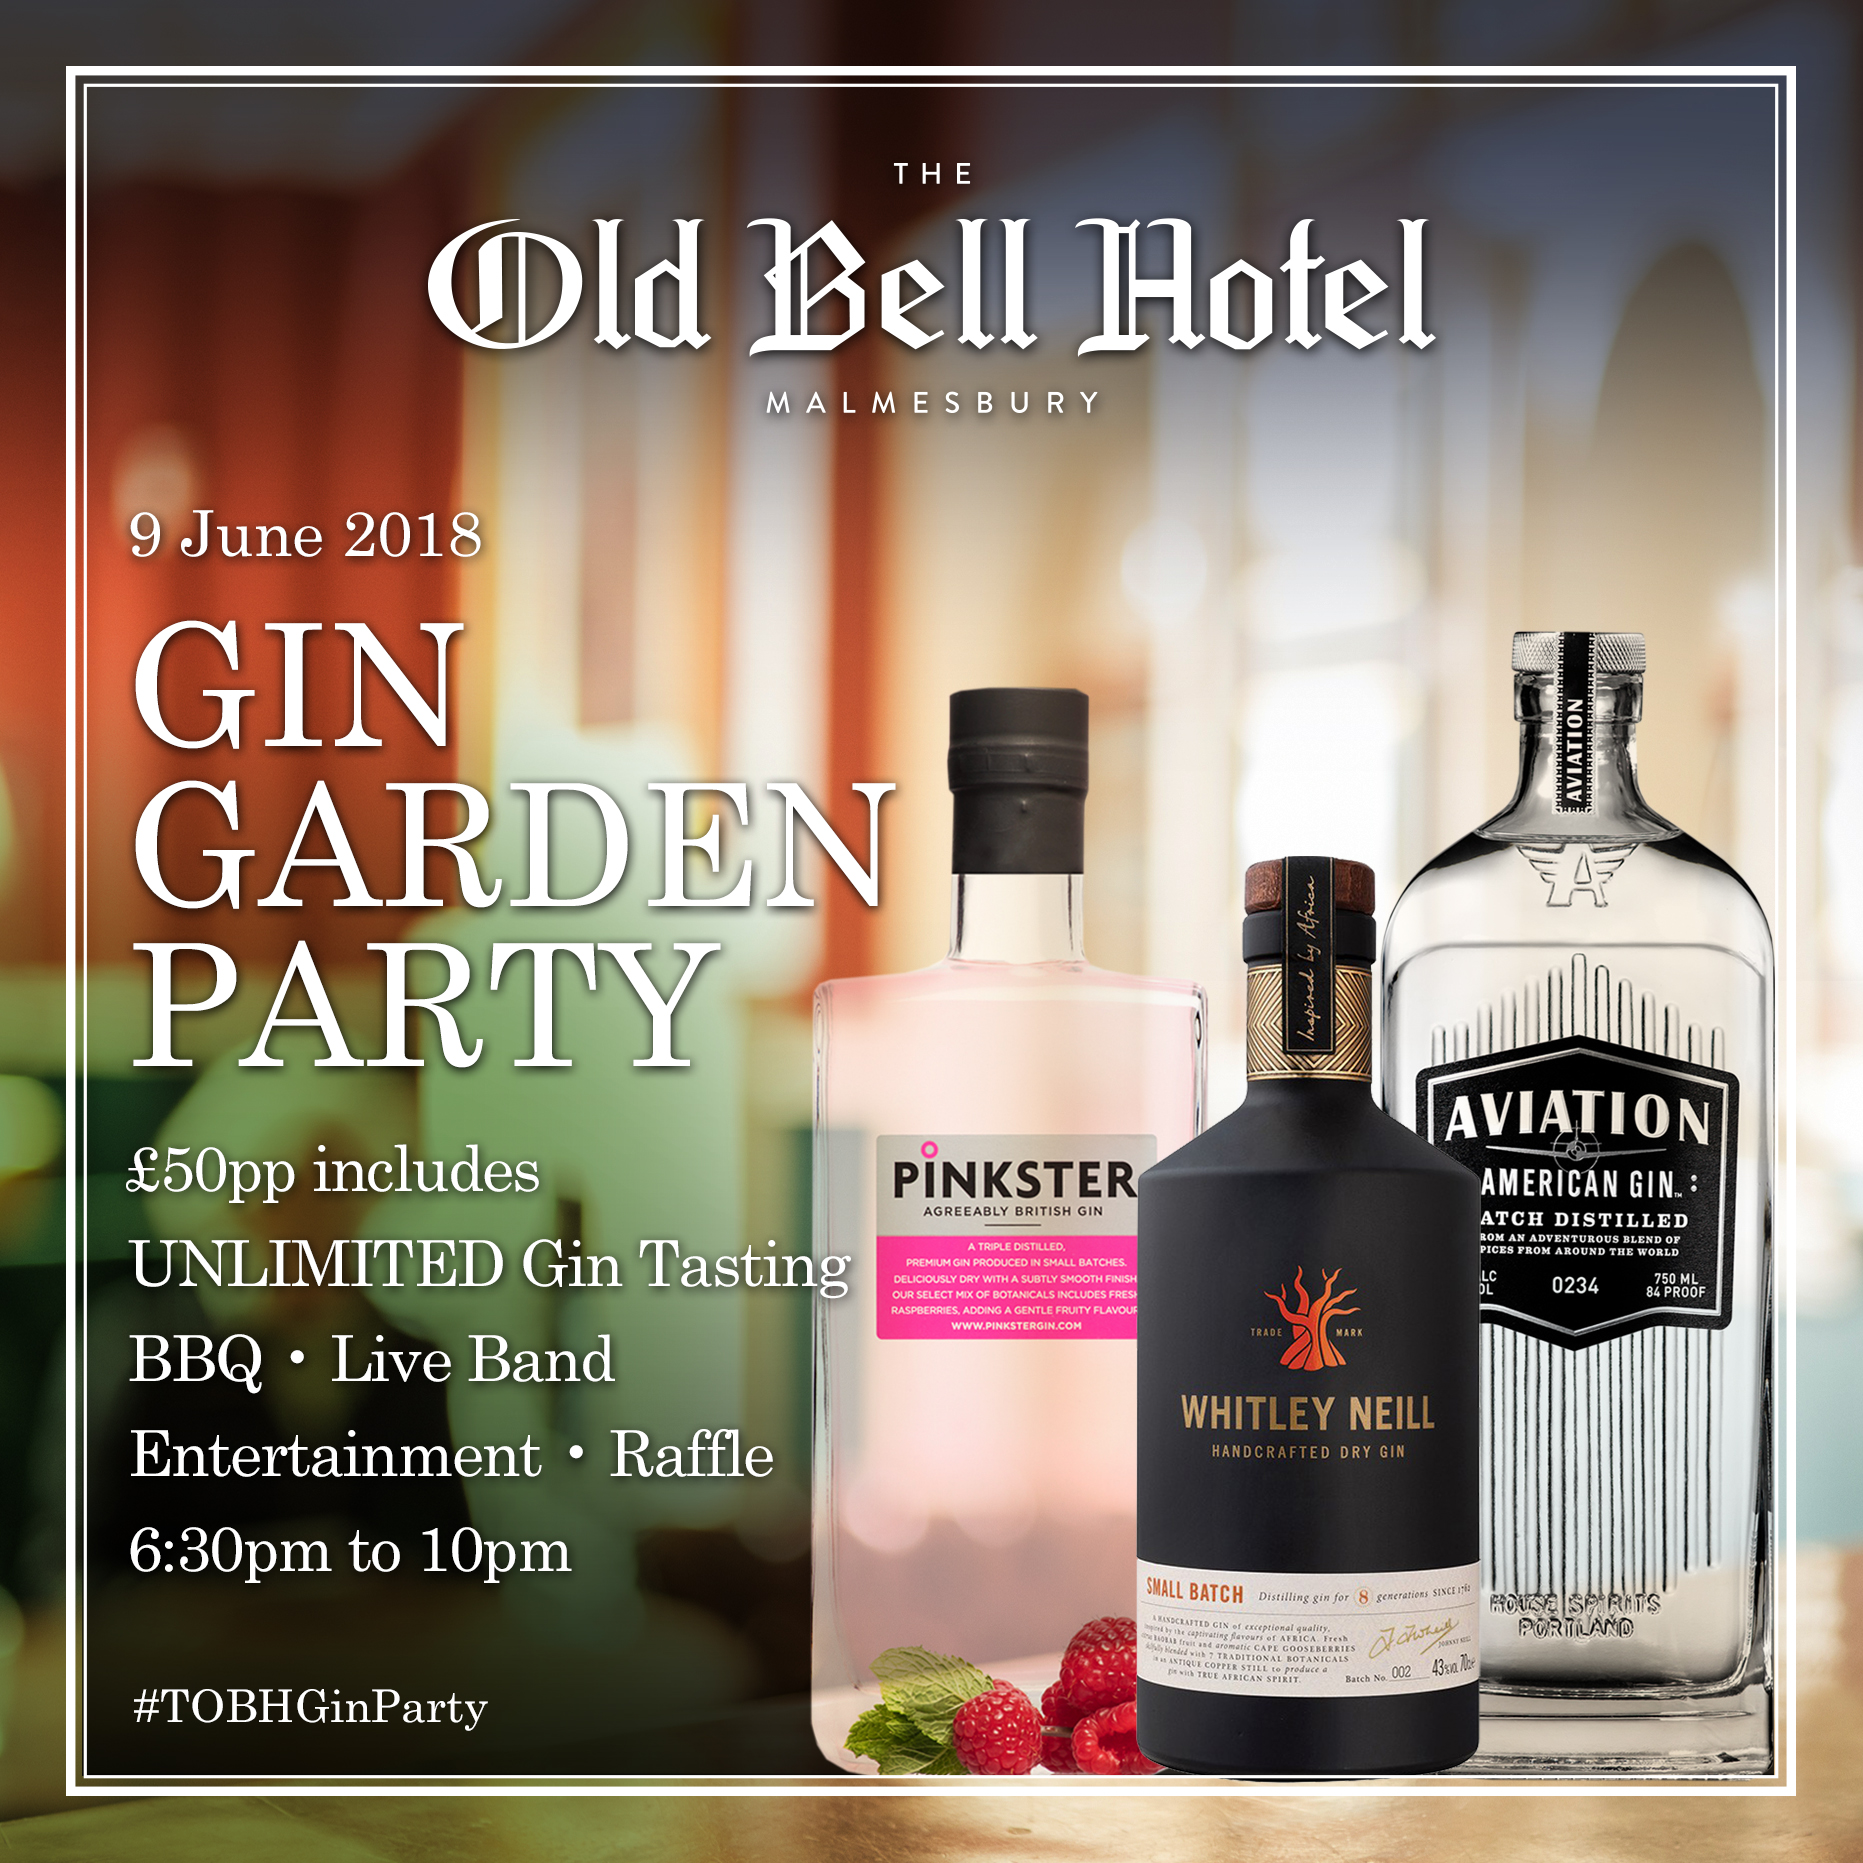 The Old Bell Hotel Gin Garden Party